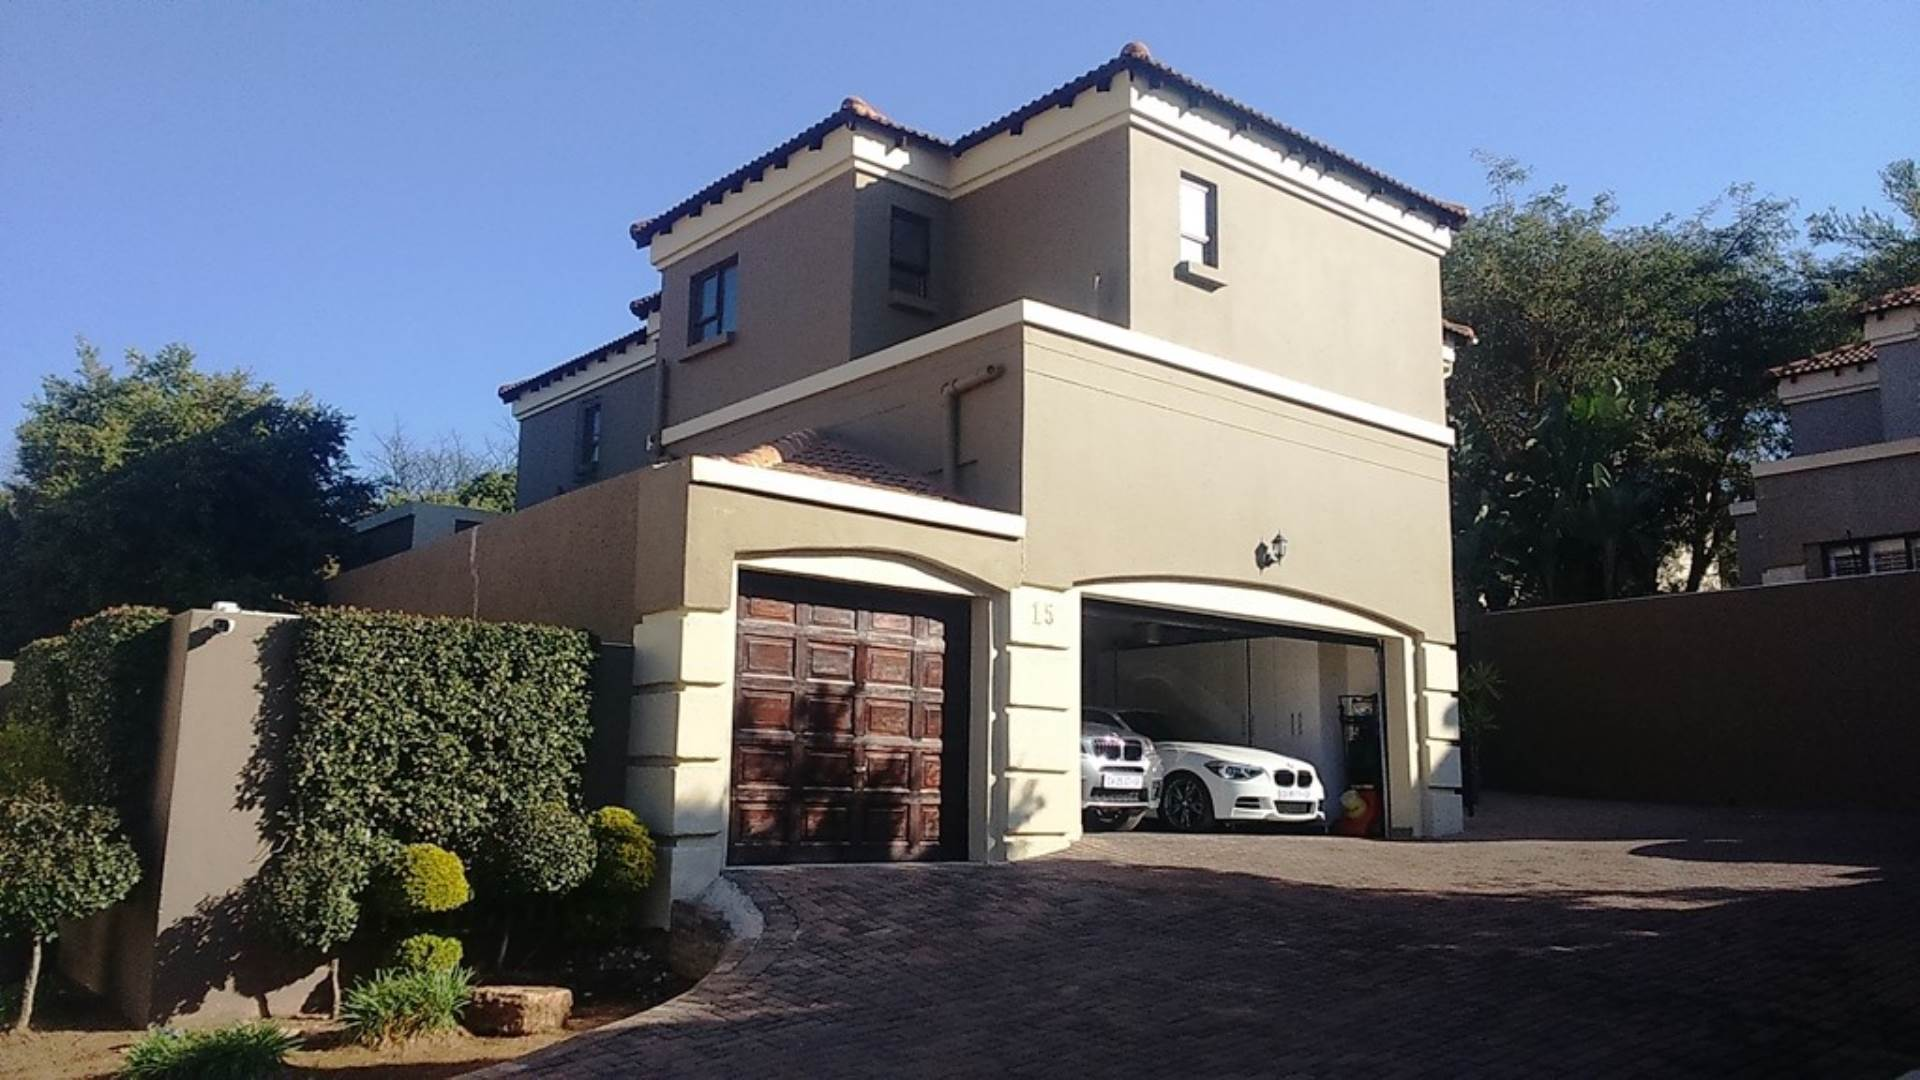 4 BedroomTownhouse To Rent In Boskruin